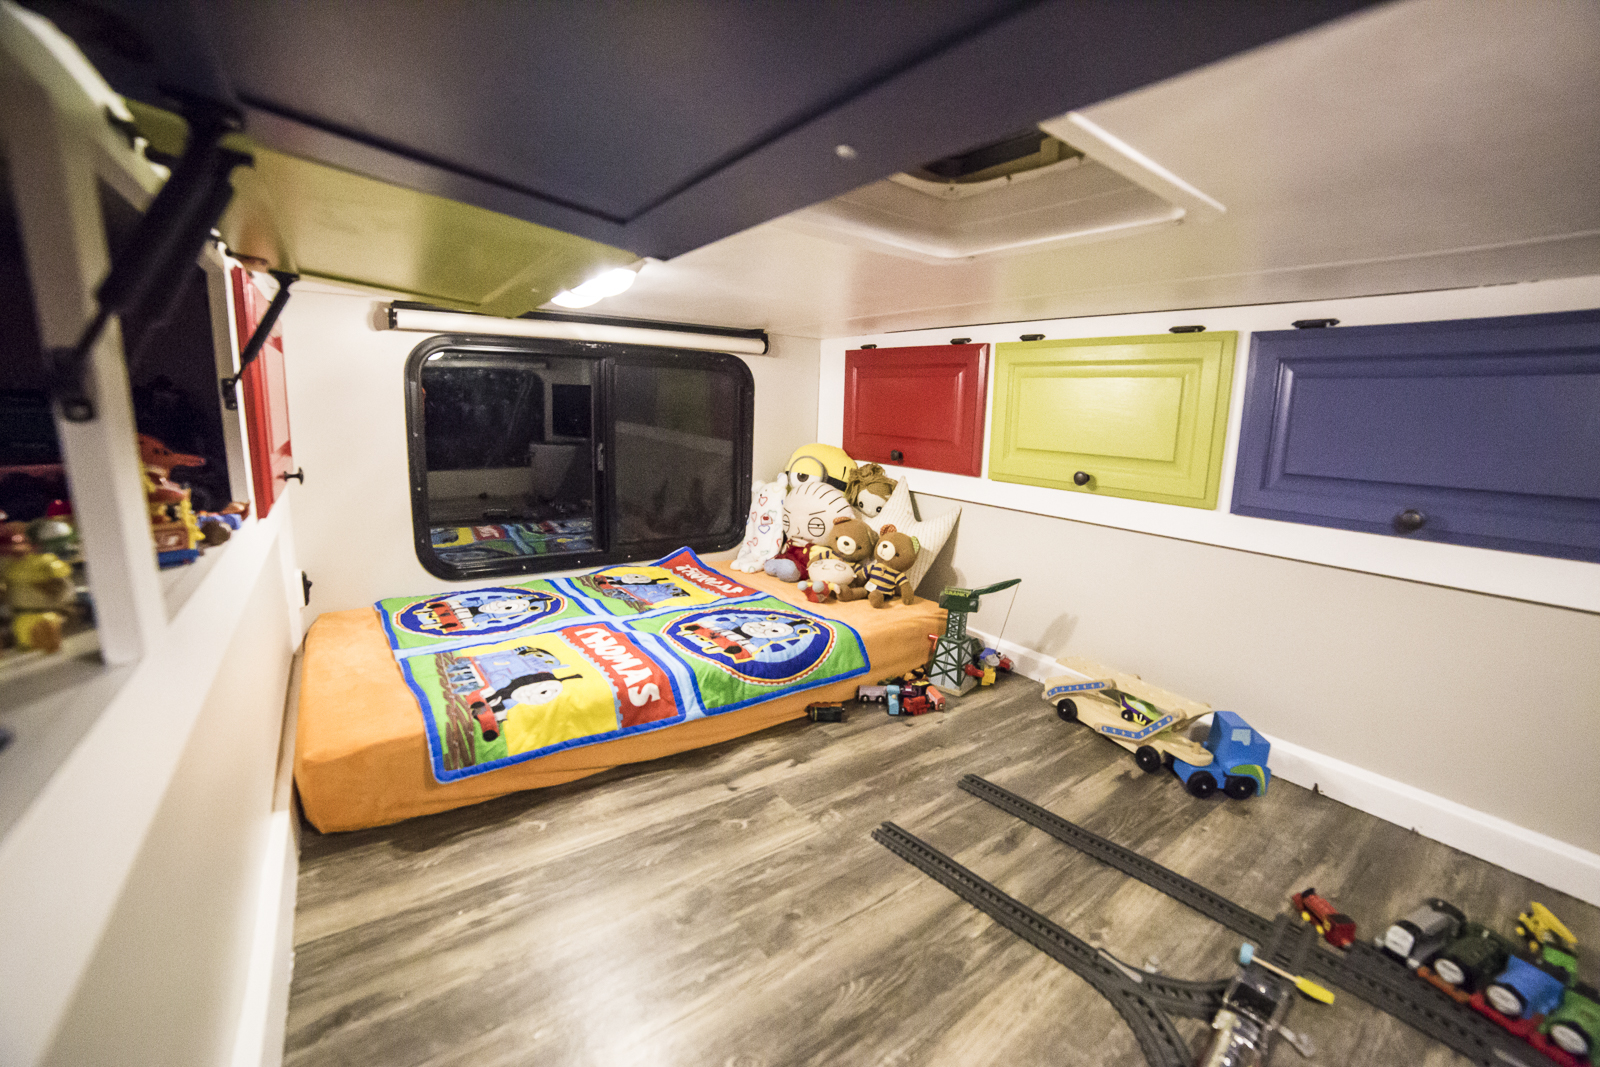 Click image for larger version  Name:RV Renovation Resized-2376.jpg Views:22 Size:1.28 MB ID:189061